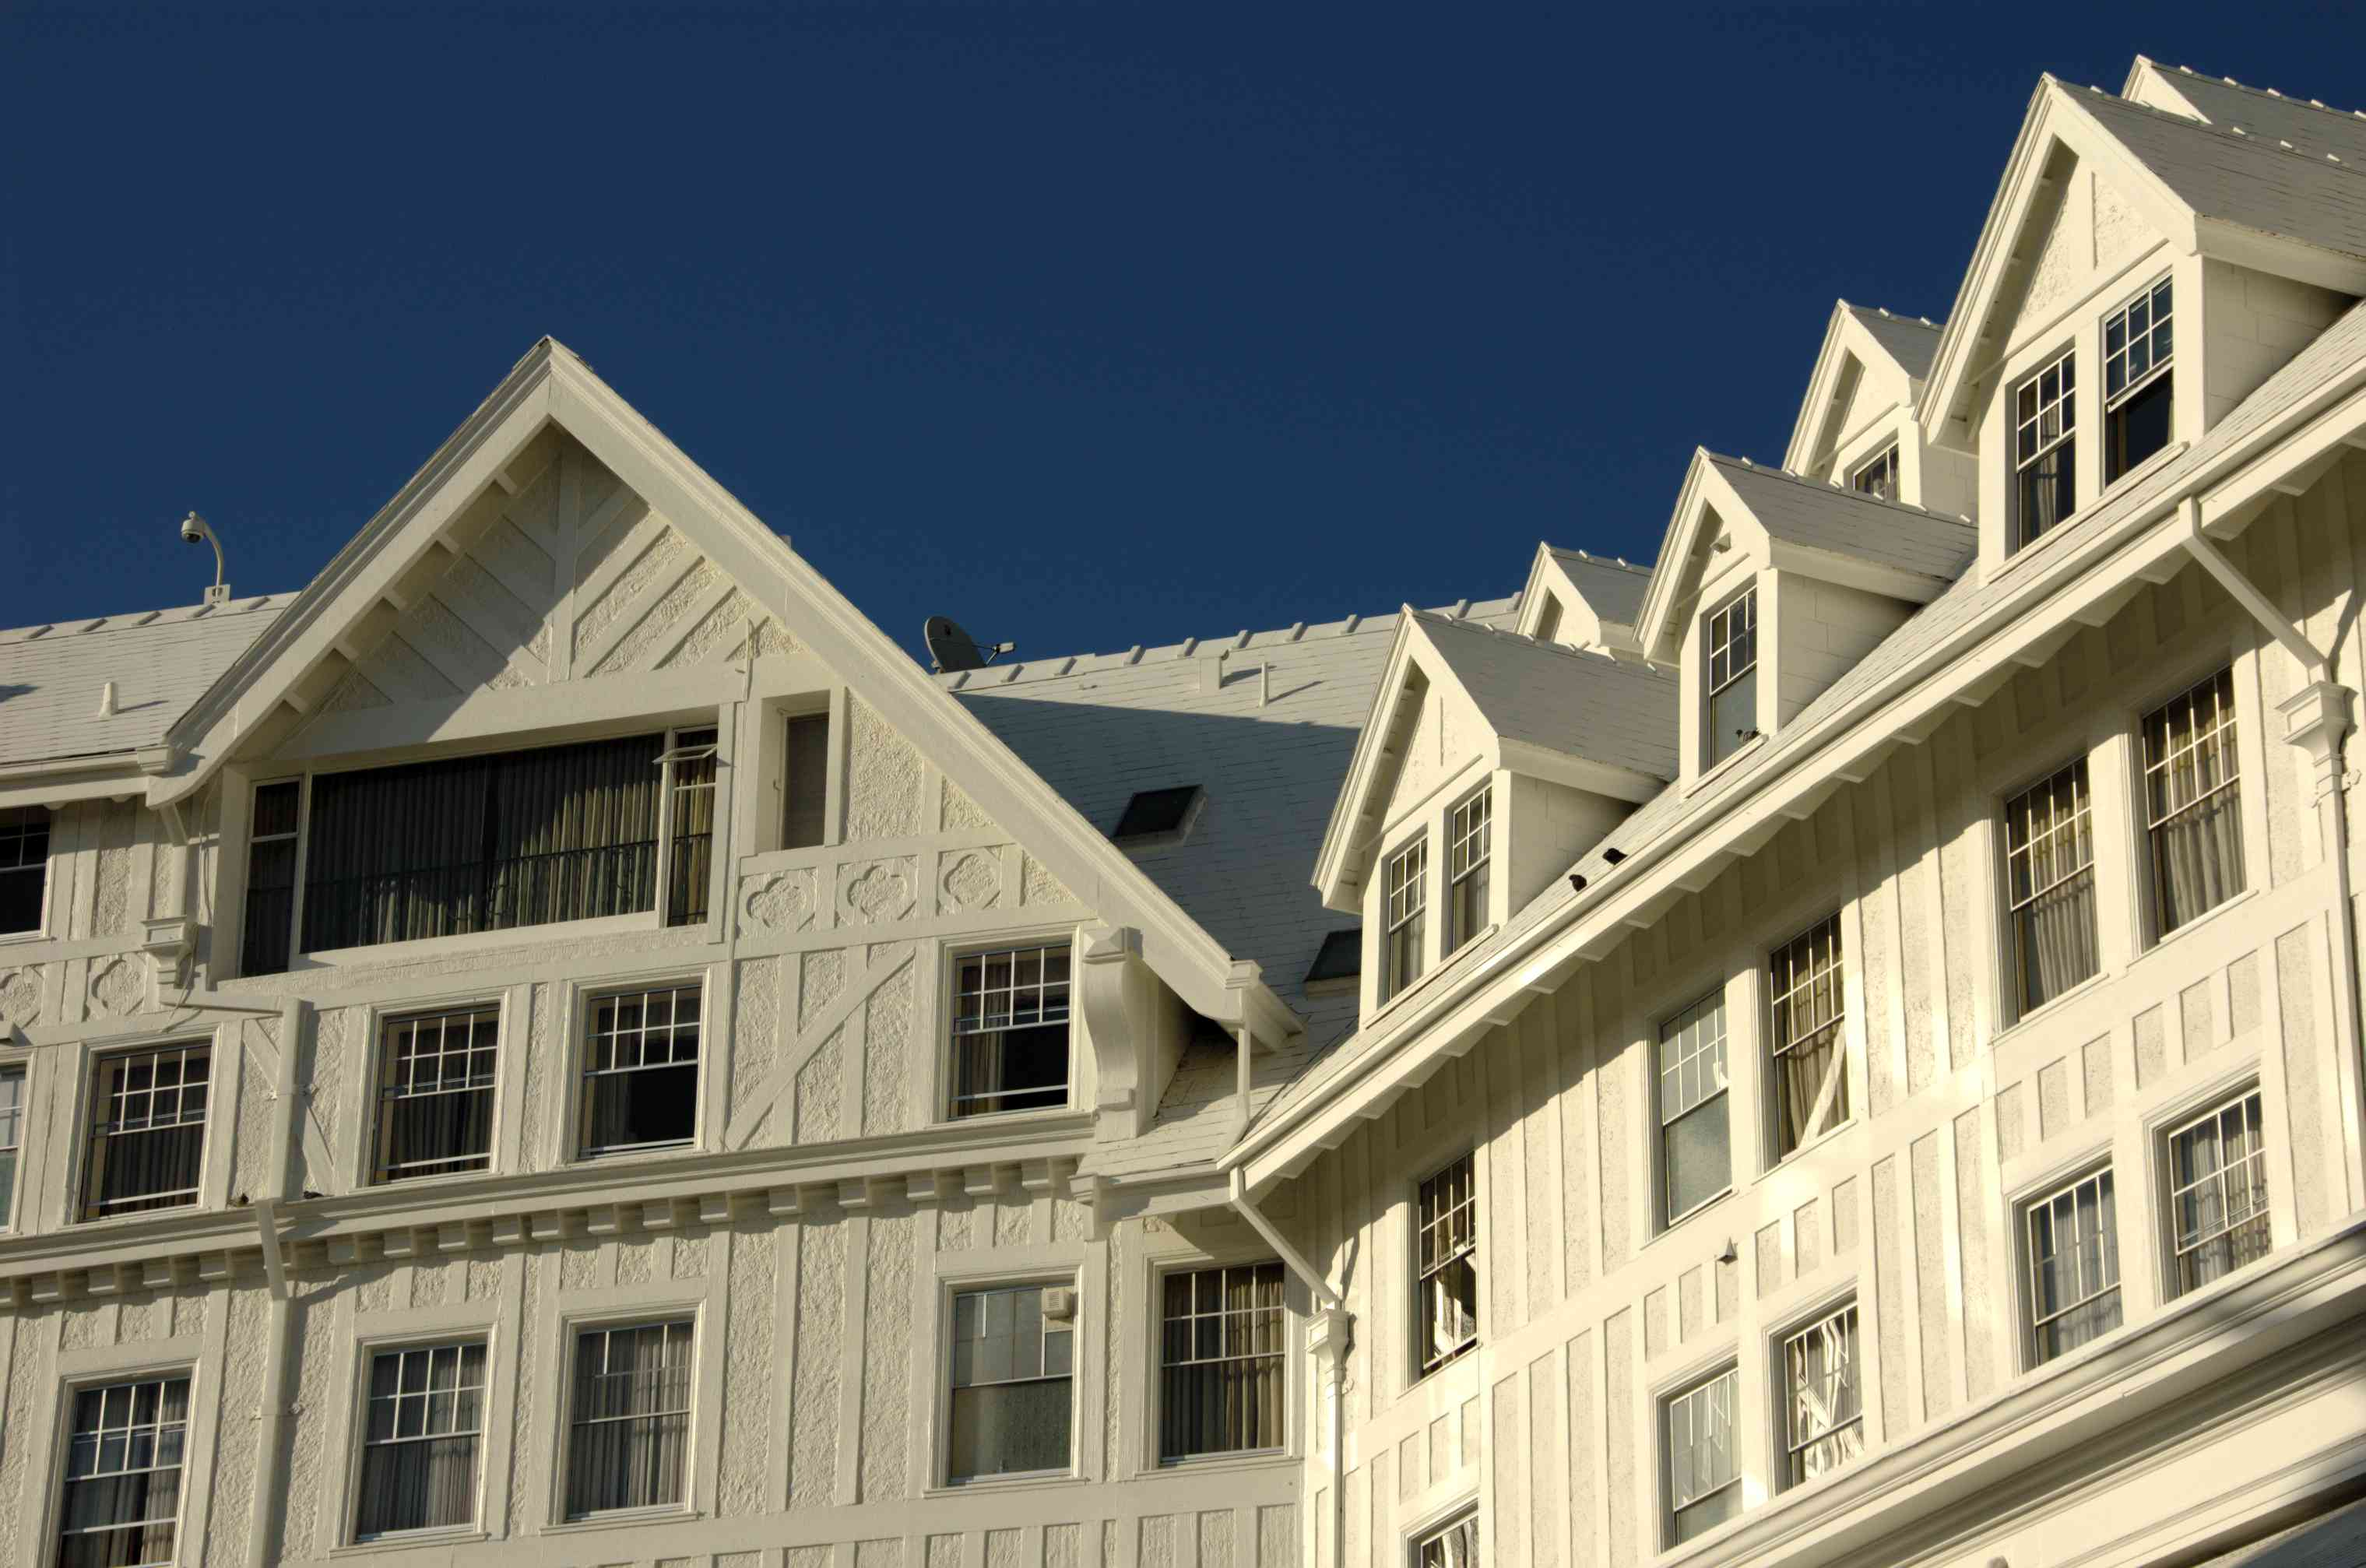 White exterior facade of the Claremont Hotel